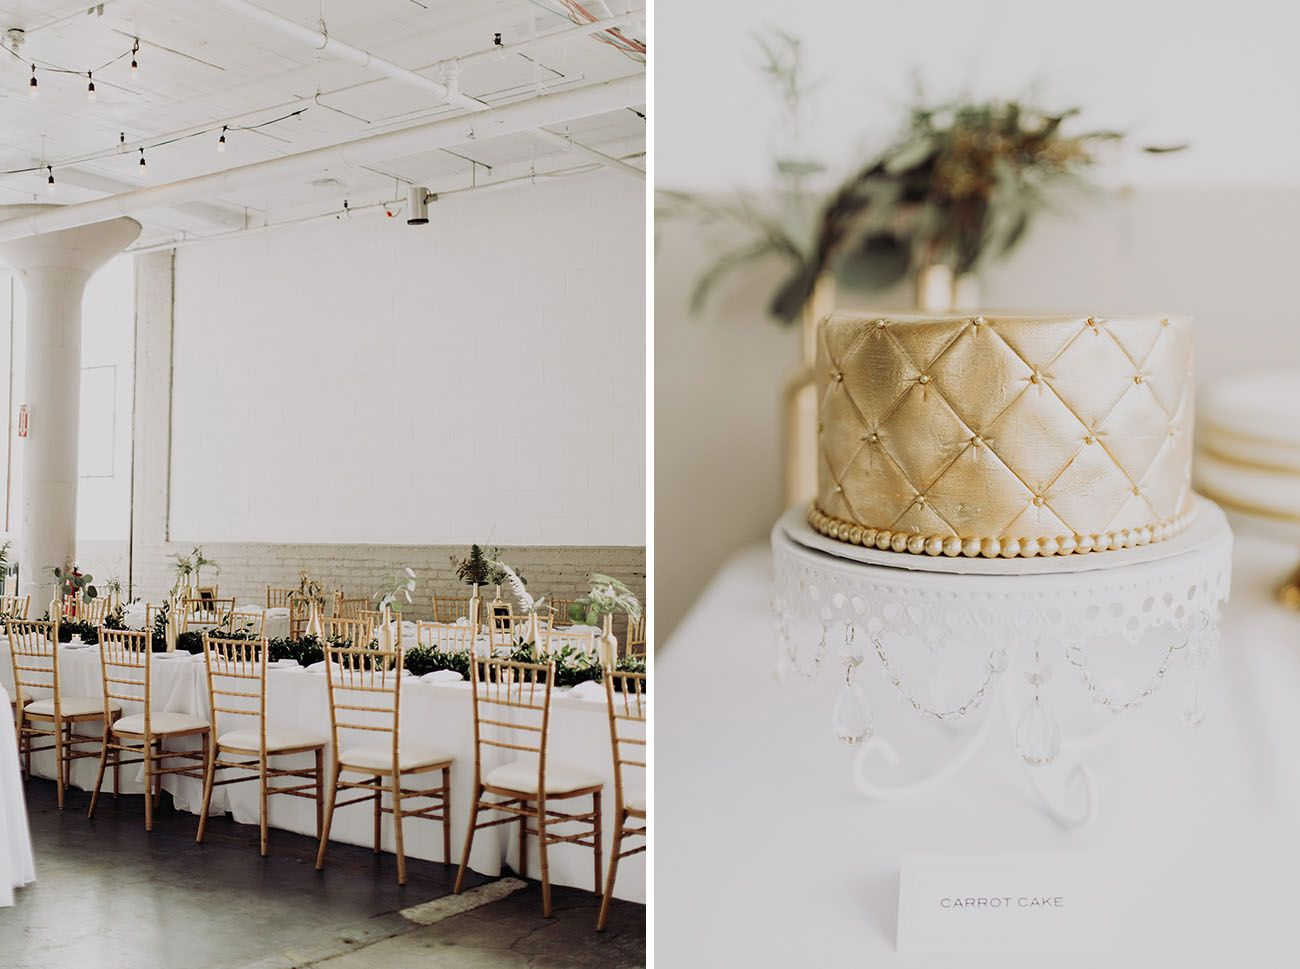 All That Glitters is Gold: DIY Great Gatsby-Inspired Wedding ...